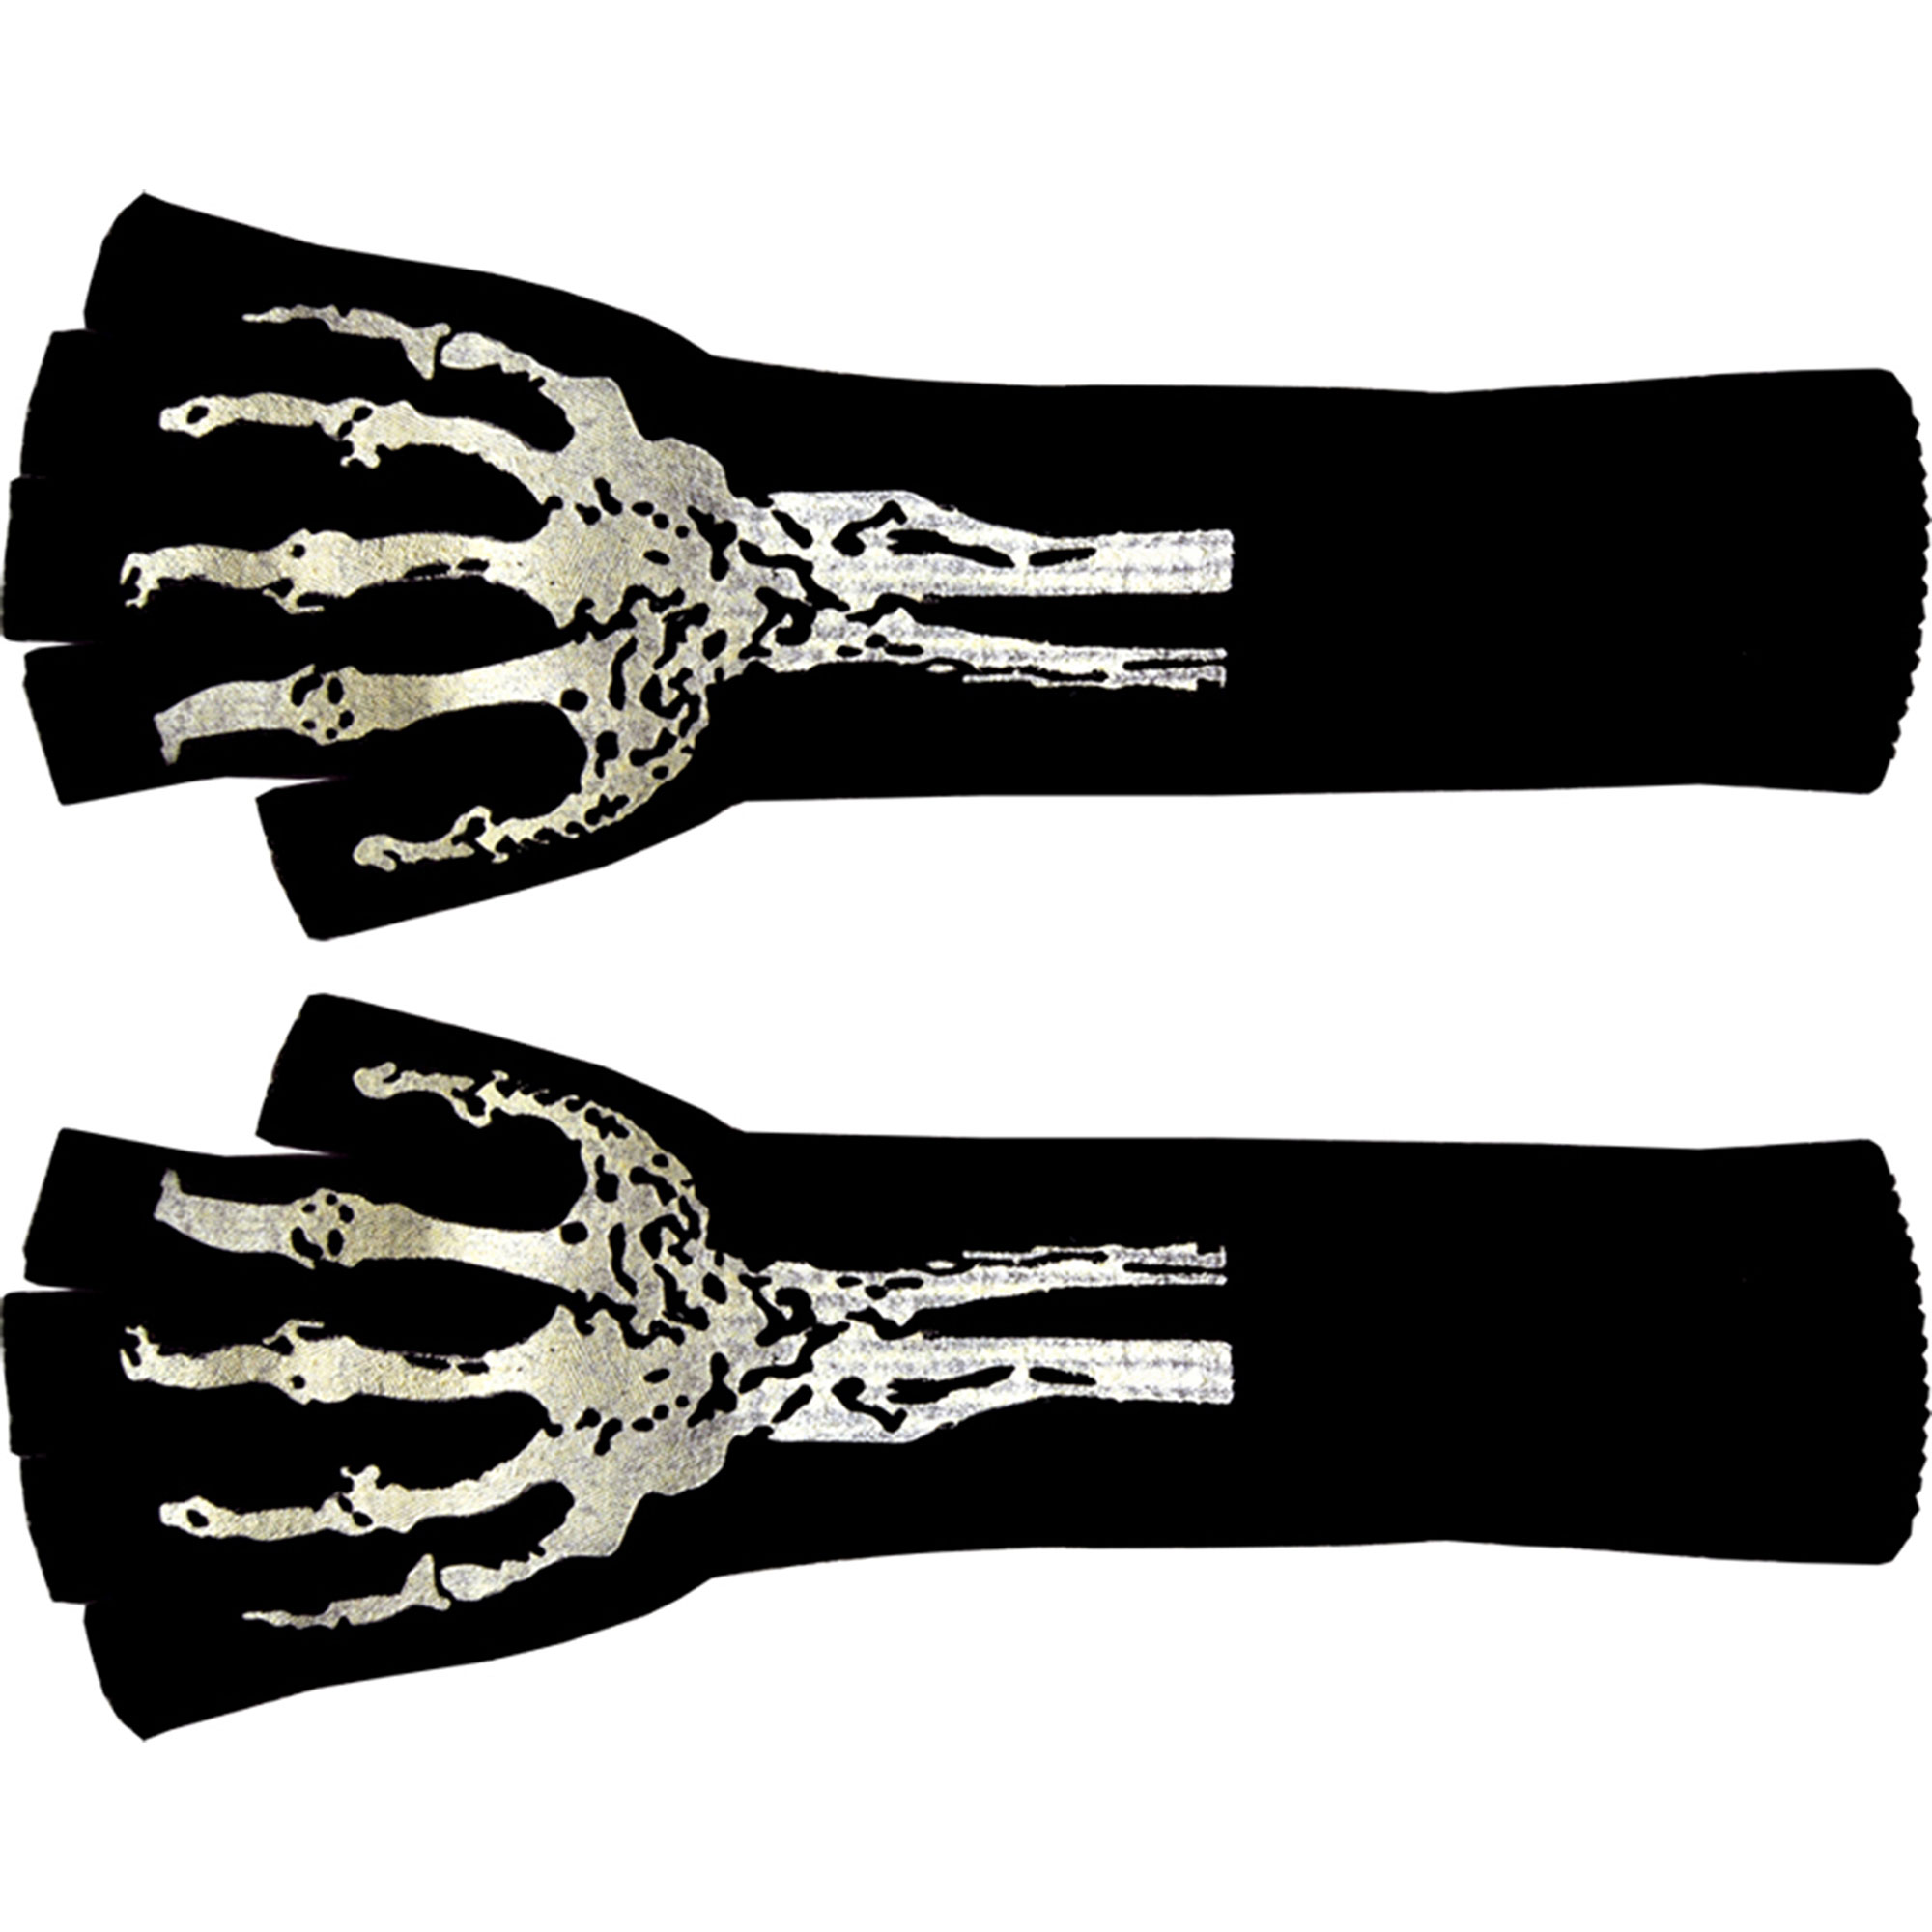 Morris Costumes Unisex Poly Spandex Black Knit Long Fingerless Gloves, Style SA10263